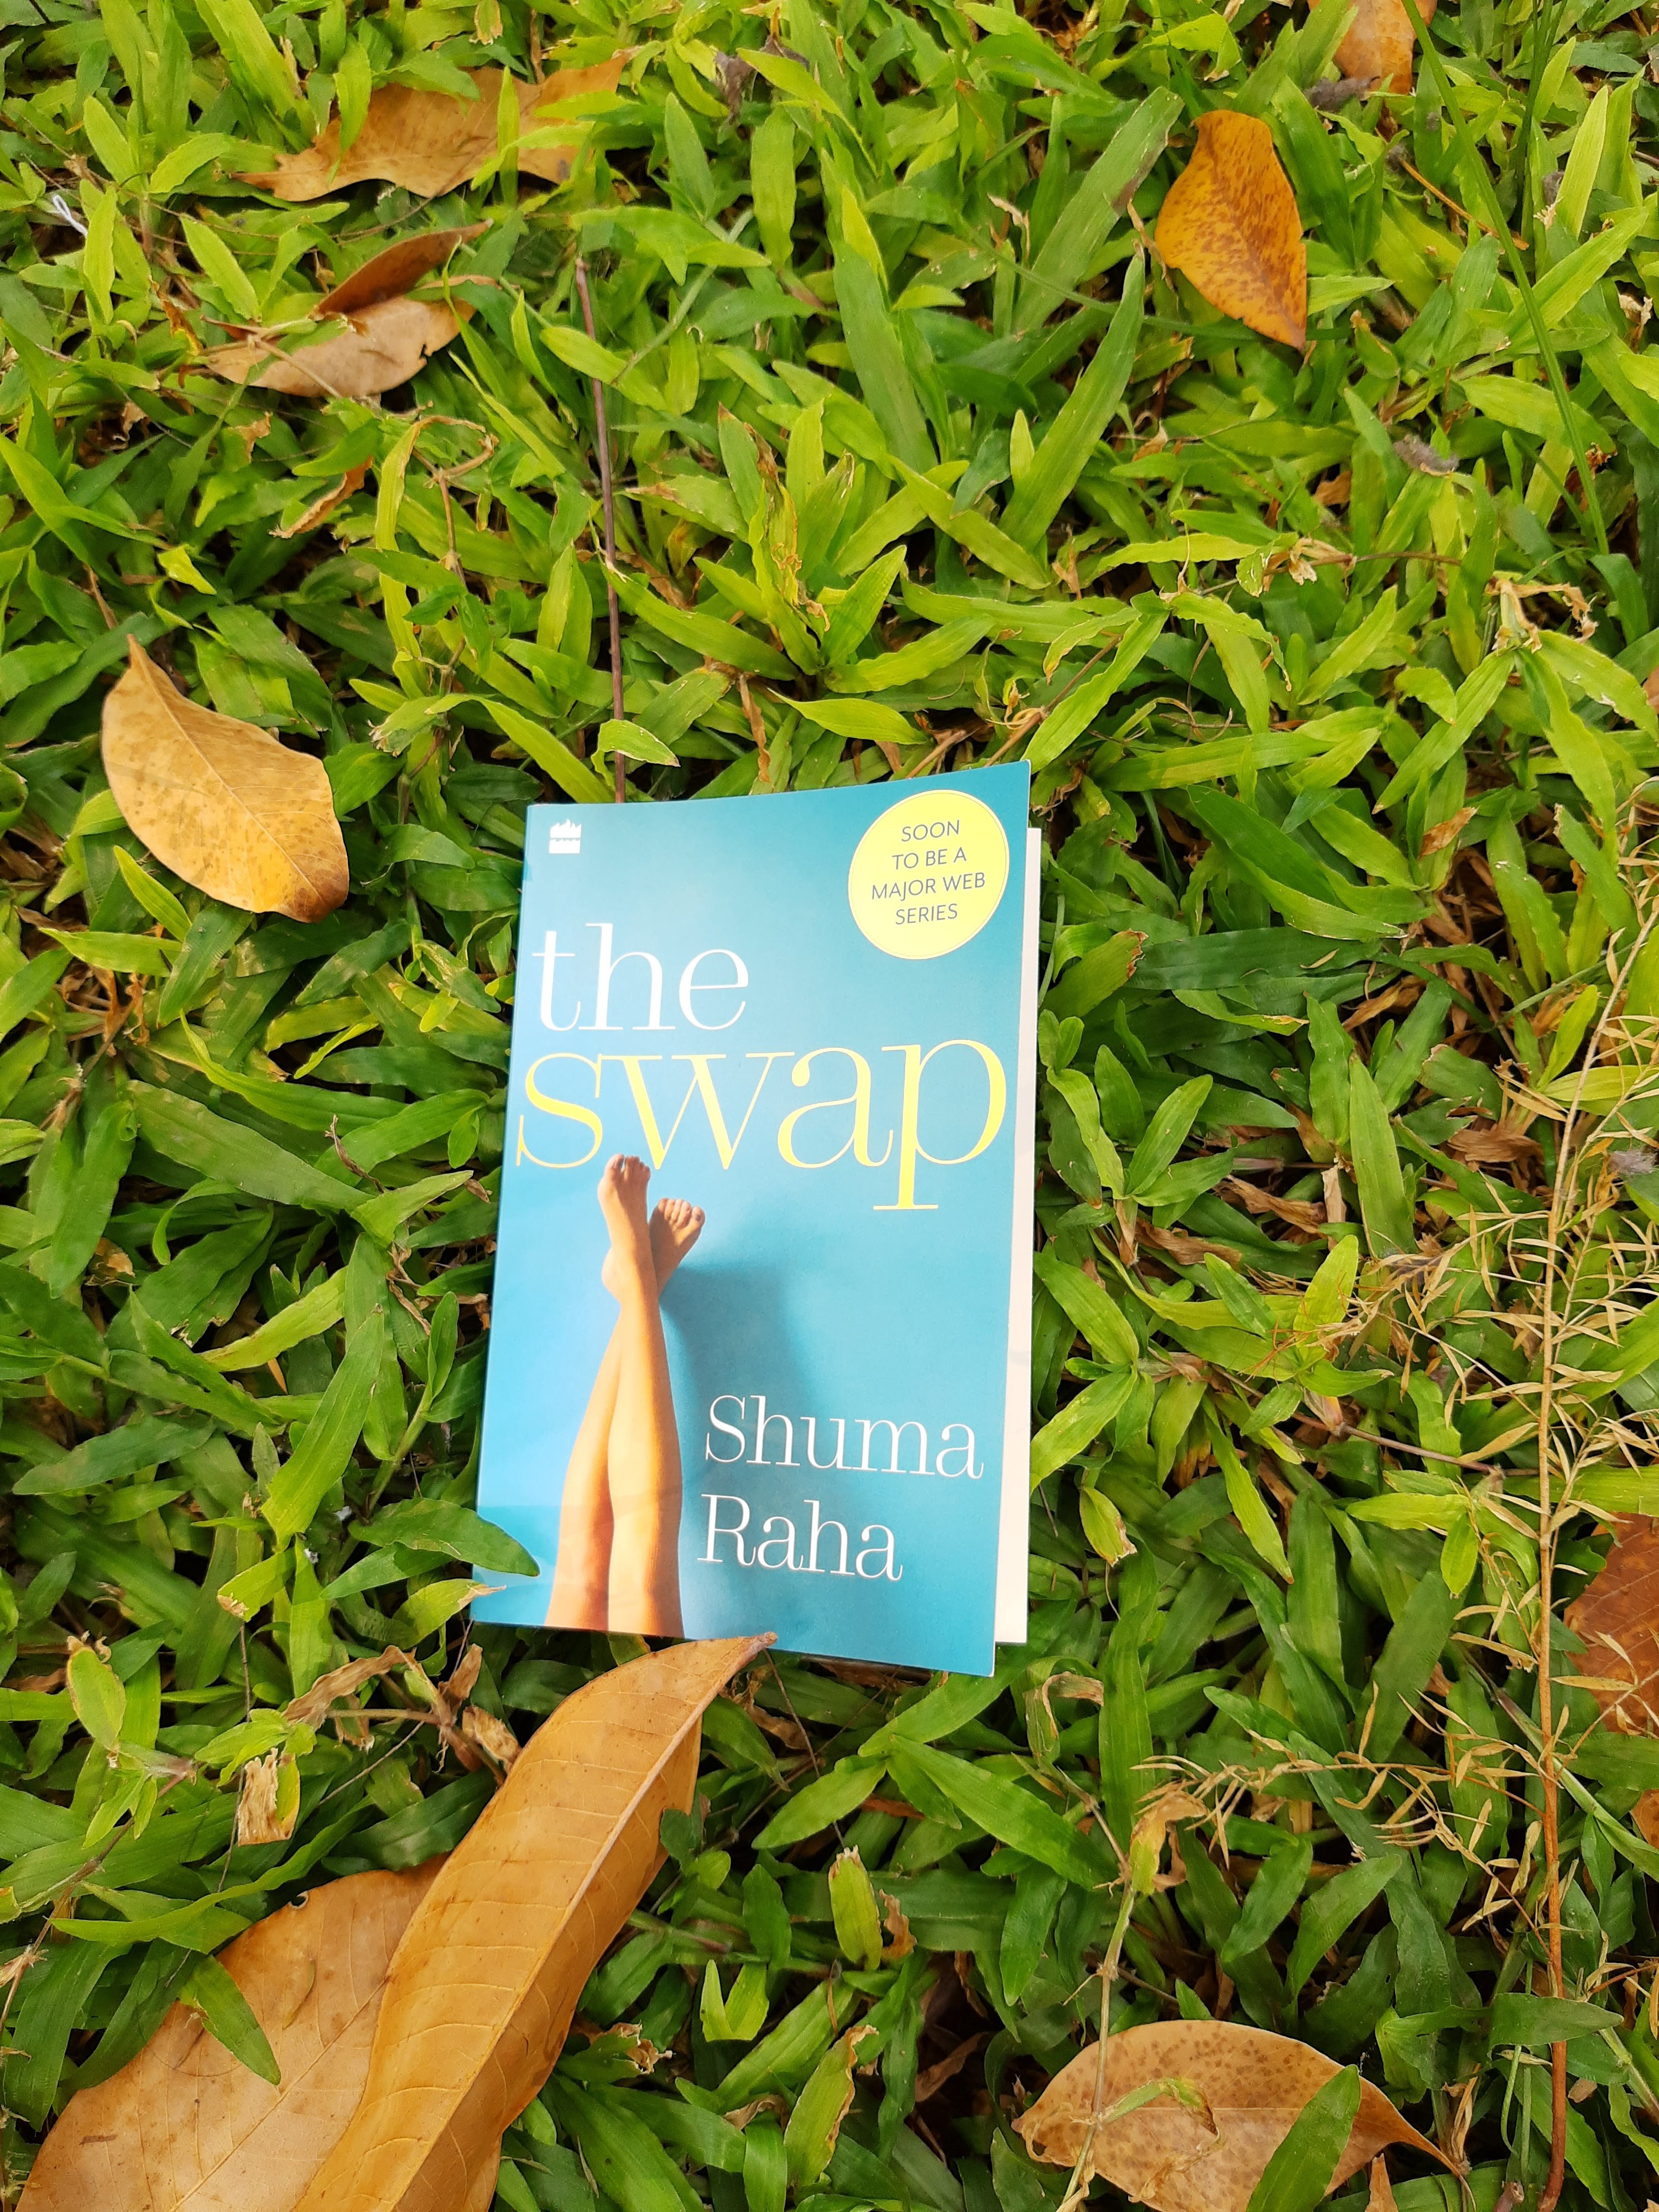 Book Review — The Swap by Shuma Raha